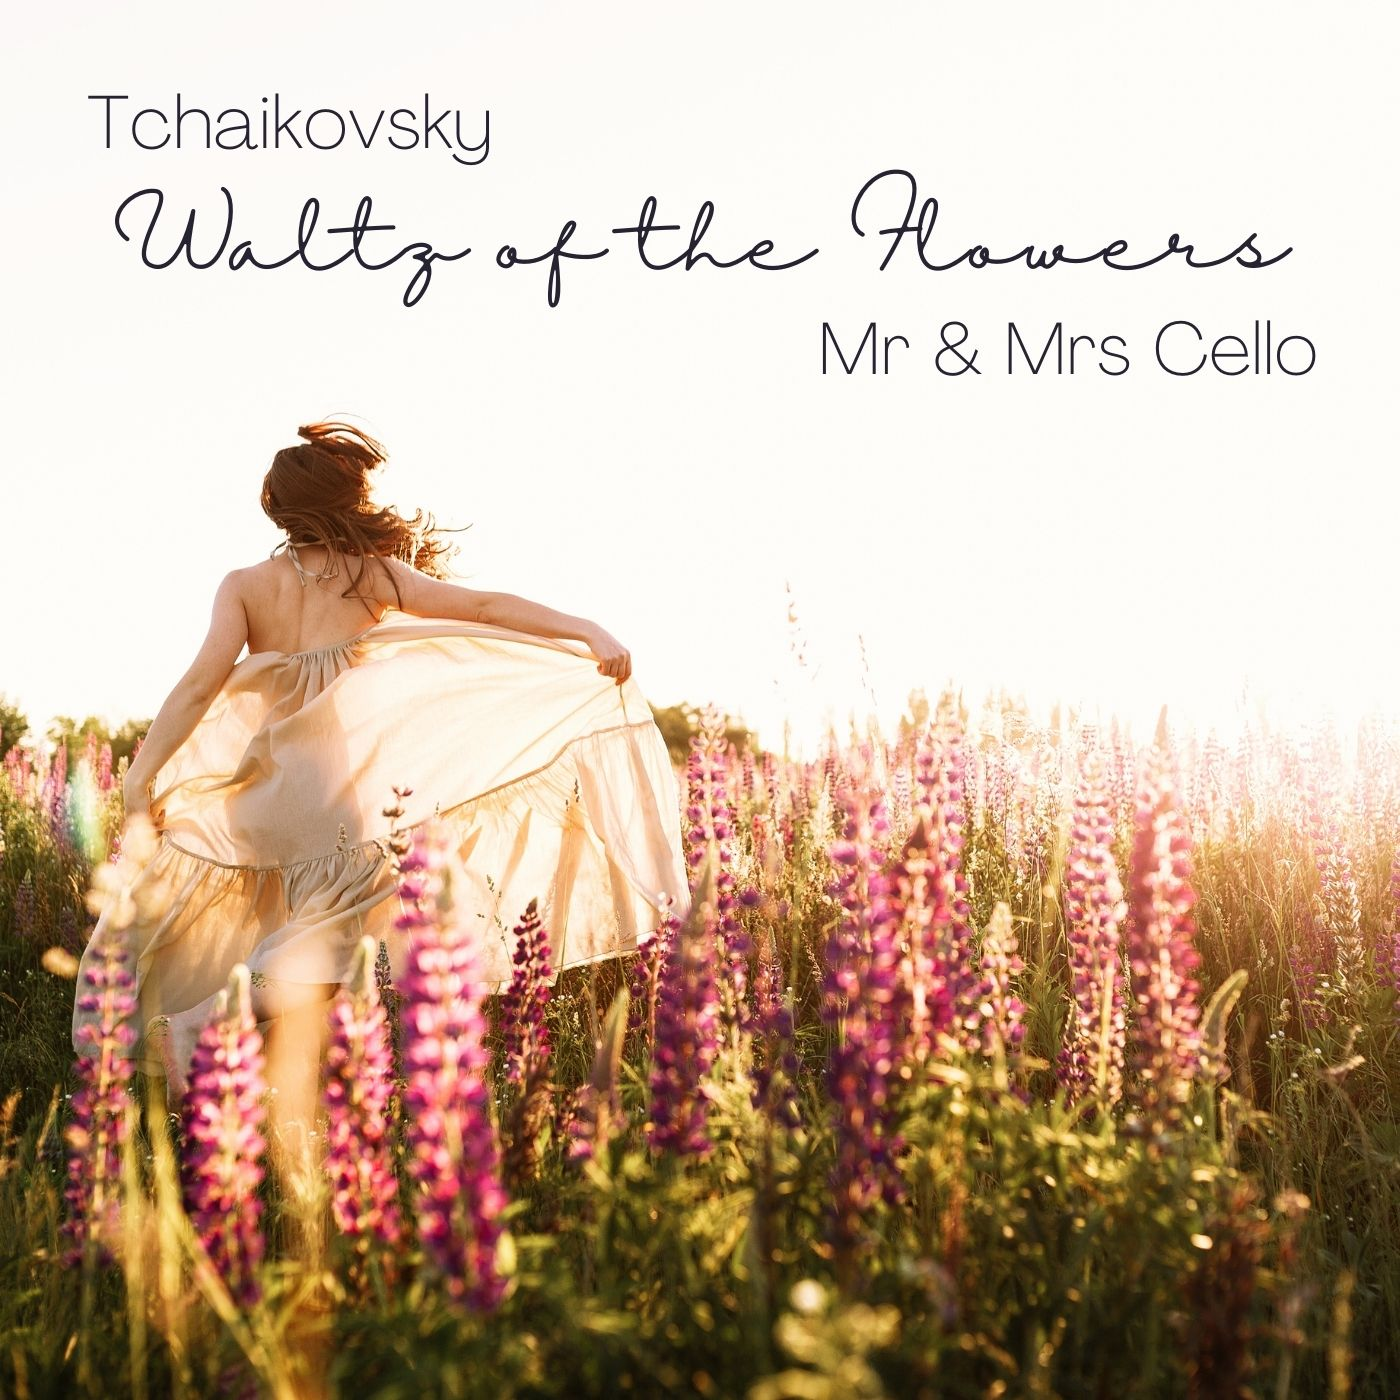 The Nutcracker, Op. 71a: VIII. Waltz of the Flowers (Arr. for Two Cellos)